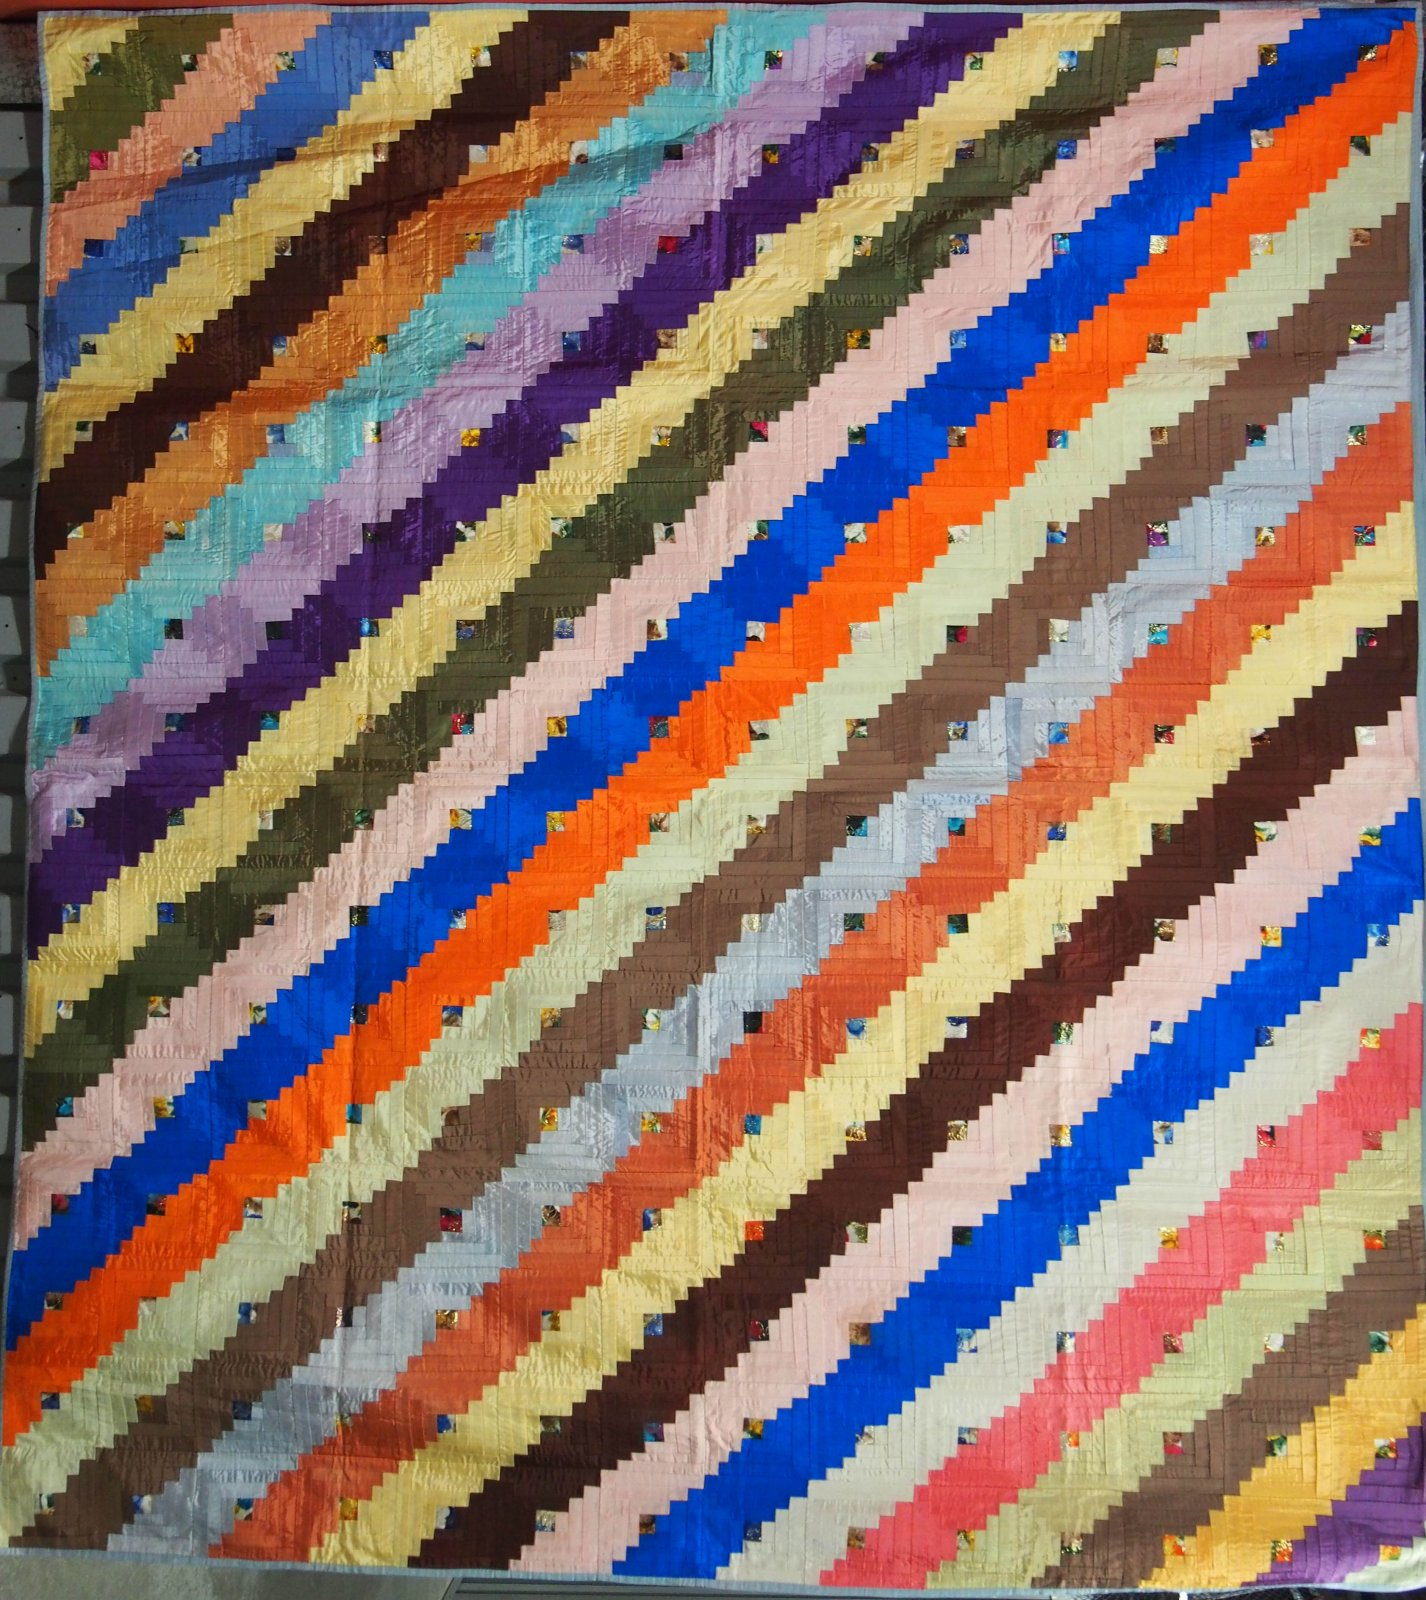 LOG CABIN STRAIGHT FURROW SATIN RIBBONS ANTIQUE PIECED QUILT